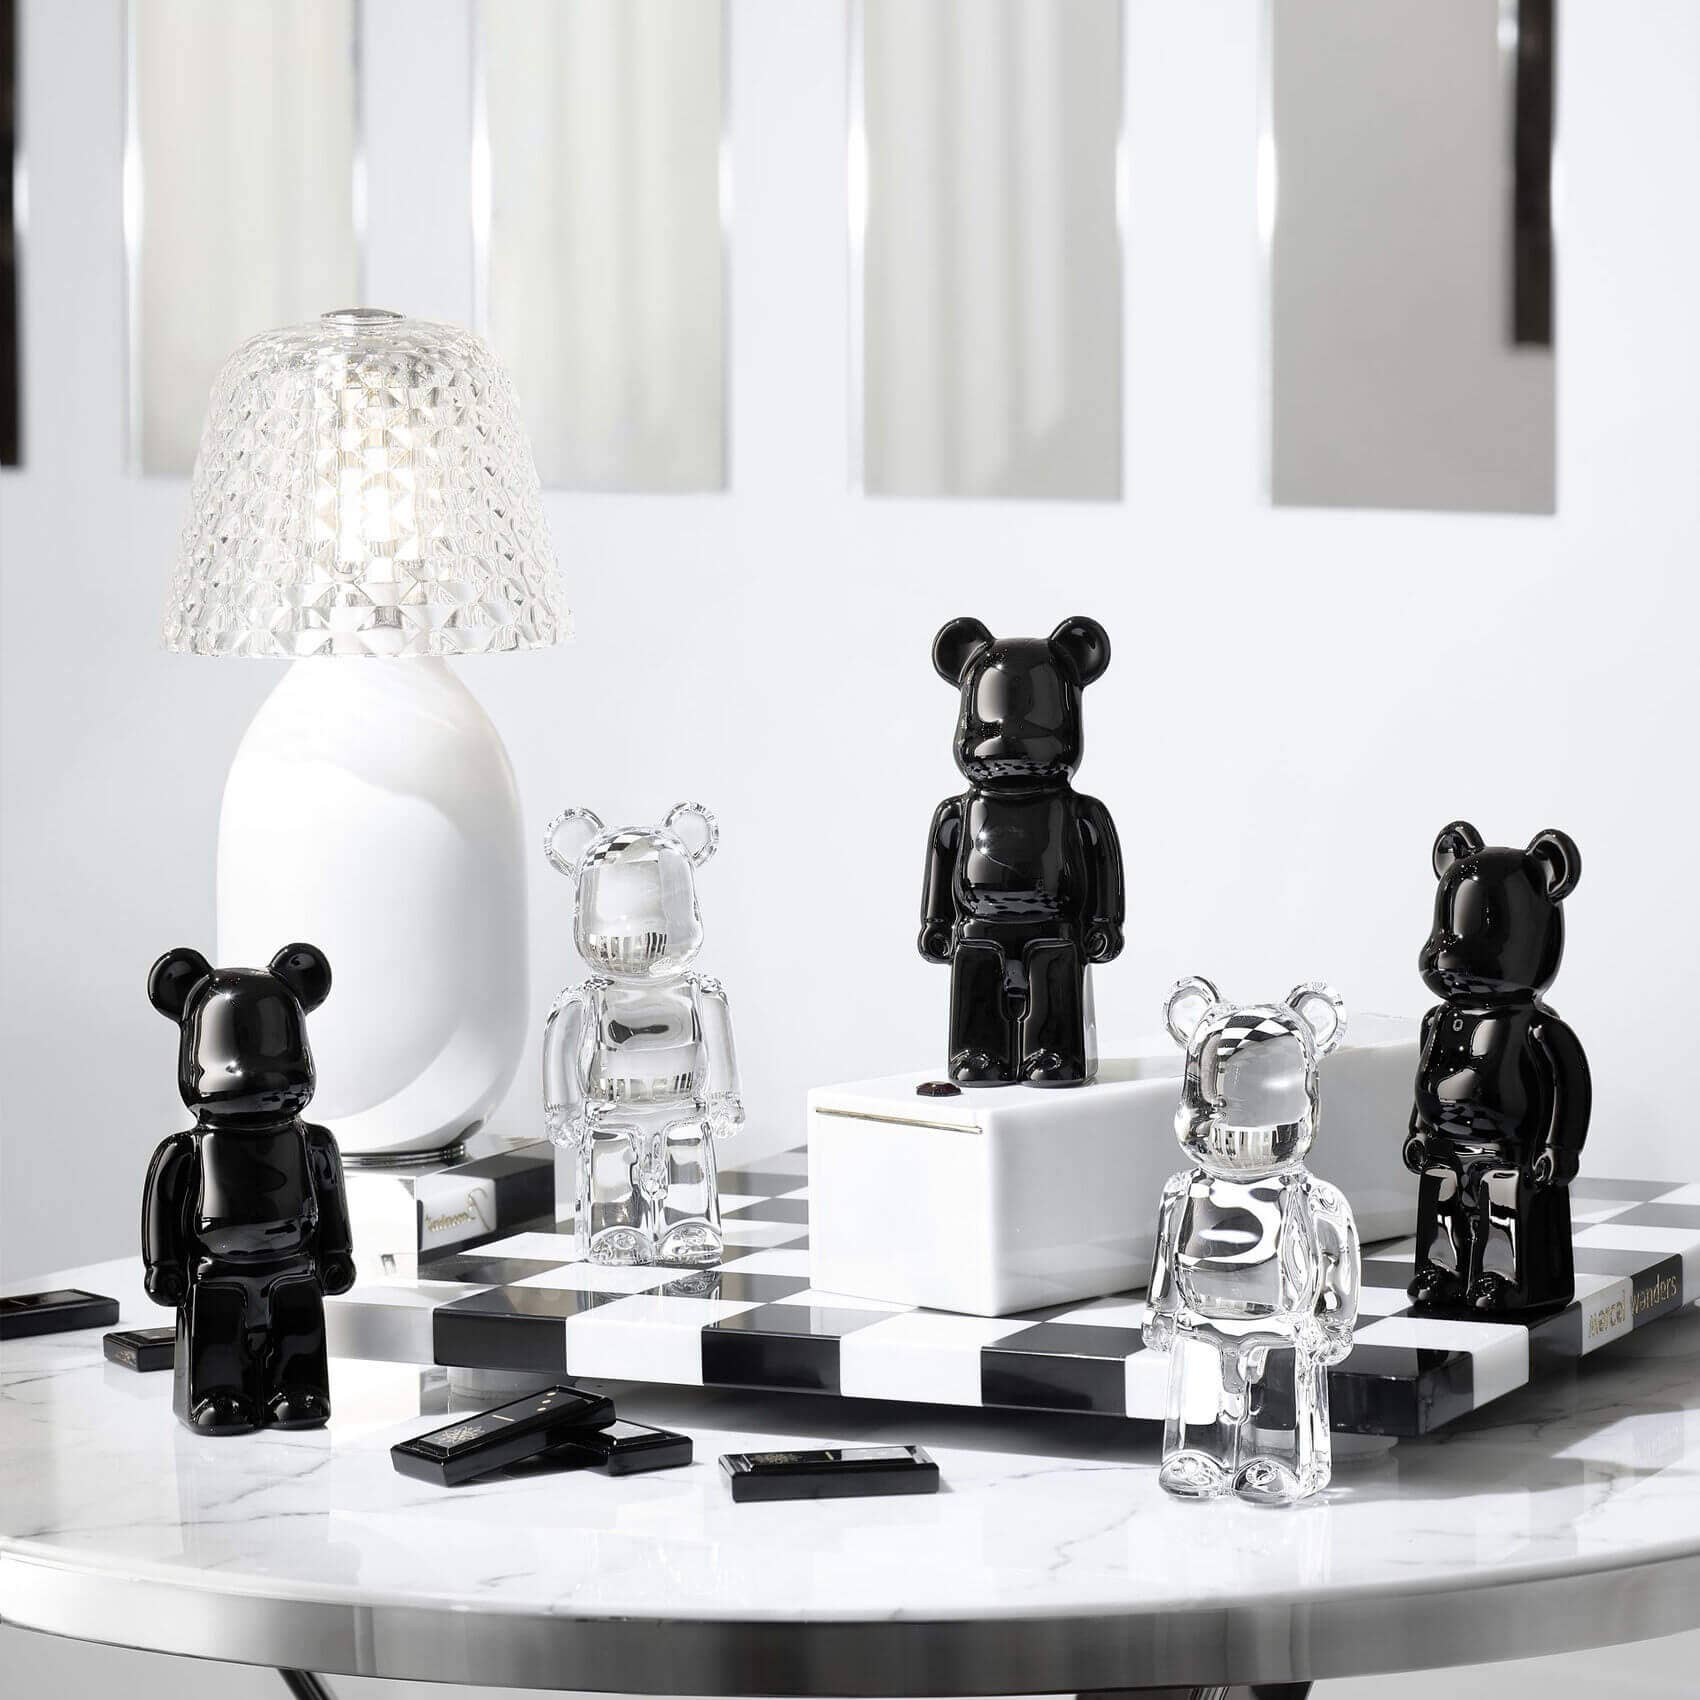 Baccarat Be@rbrick figurine in black and clear